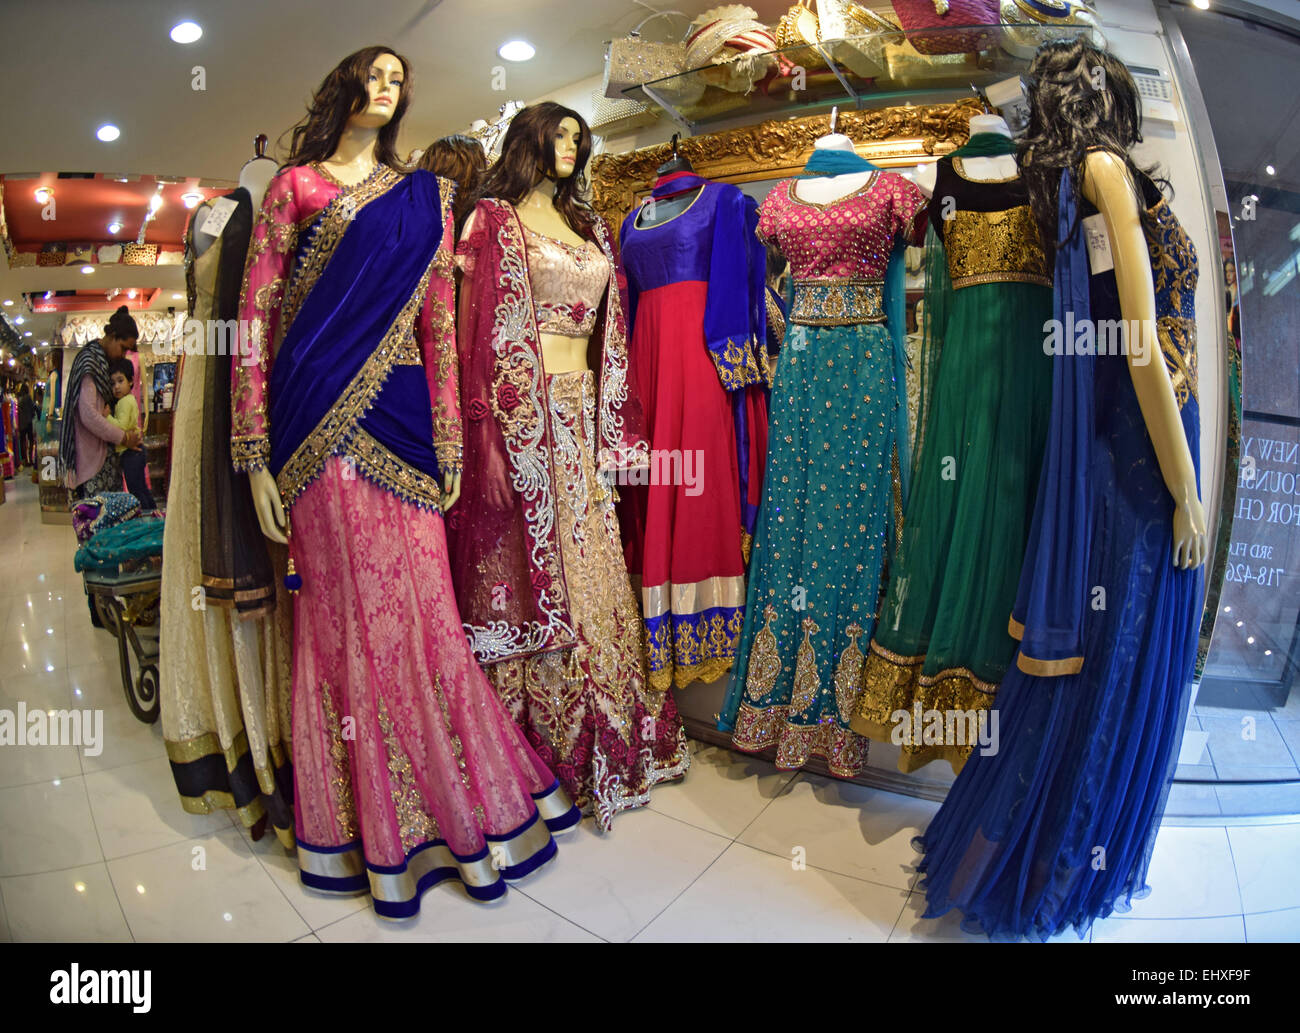 Mannequins in women's wedding saris in the Indian shop Pirani on 74th Street in Jackson Heights, Queens, New York Stock Photo